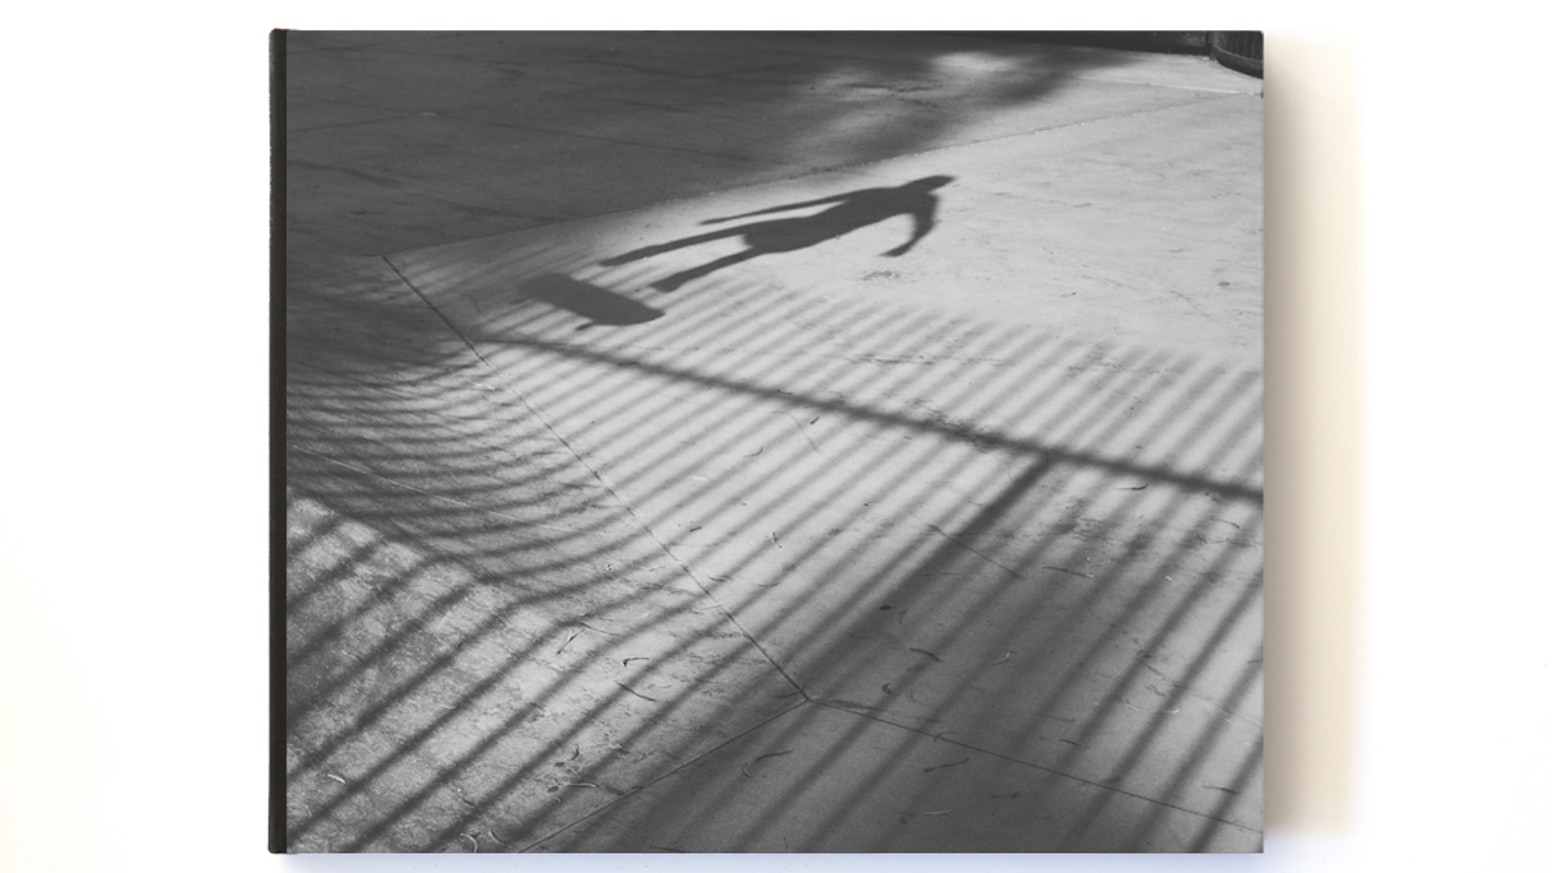 A photographic exploration of the #shadowself by Hamish Duncan